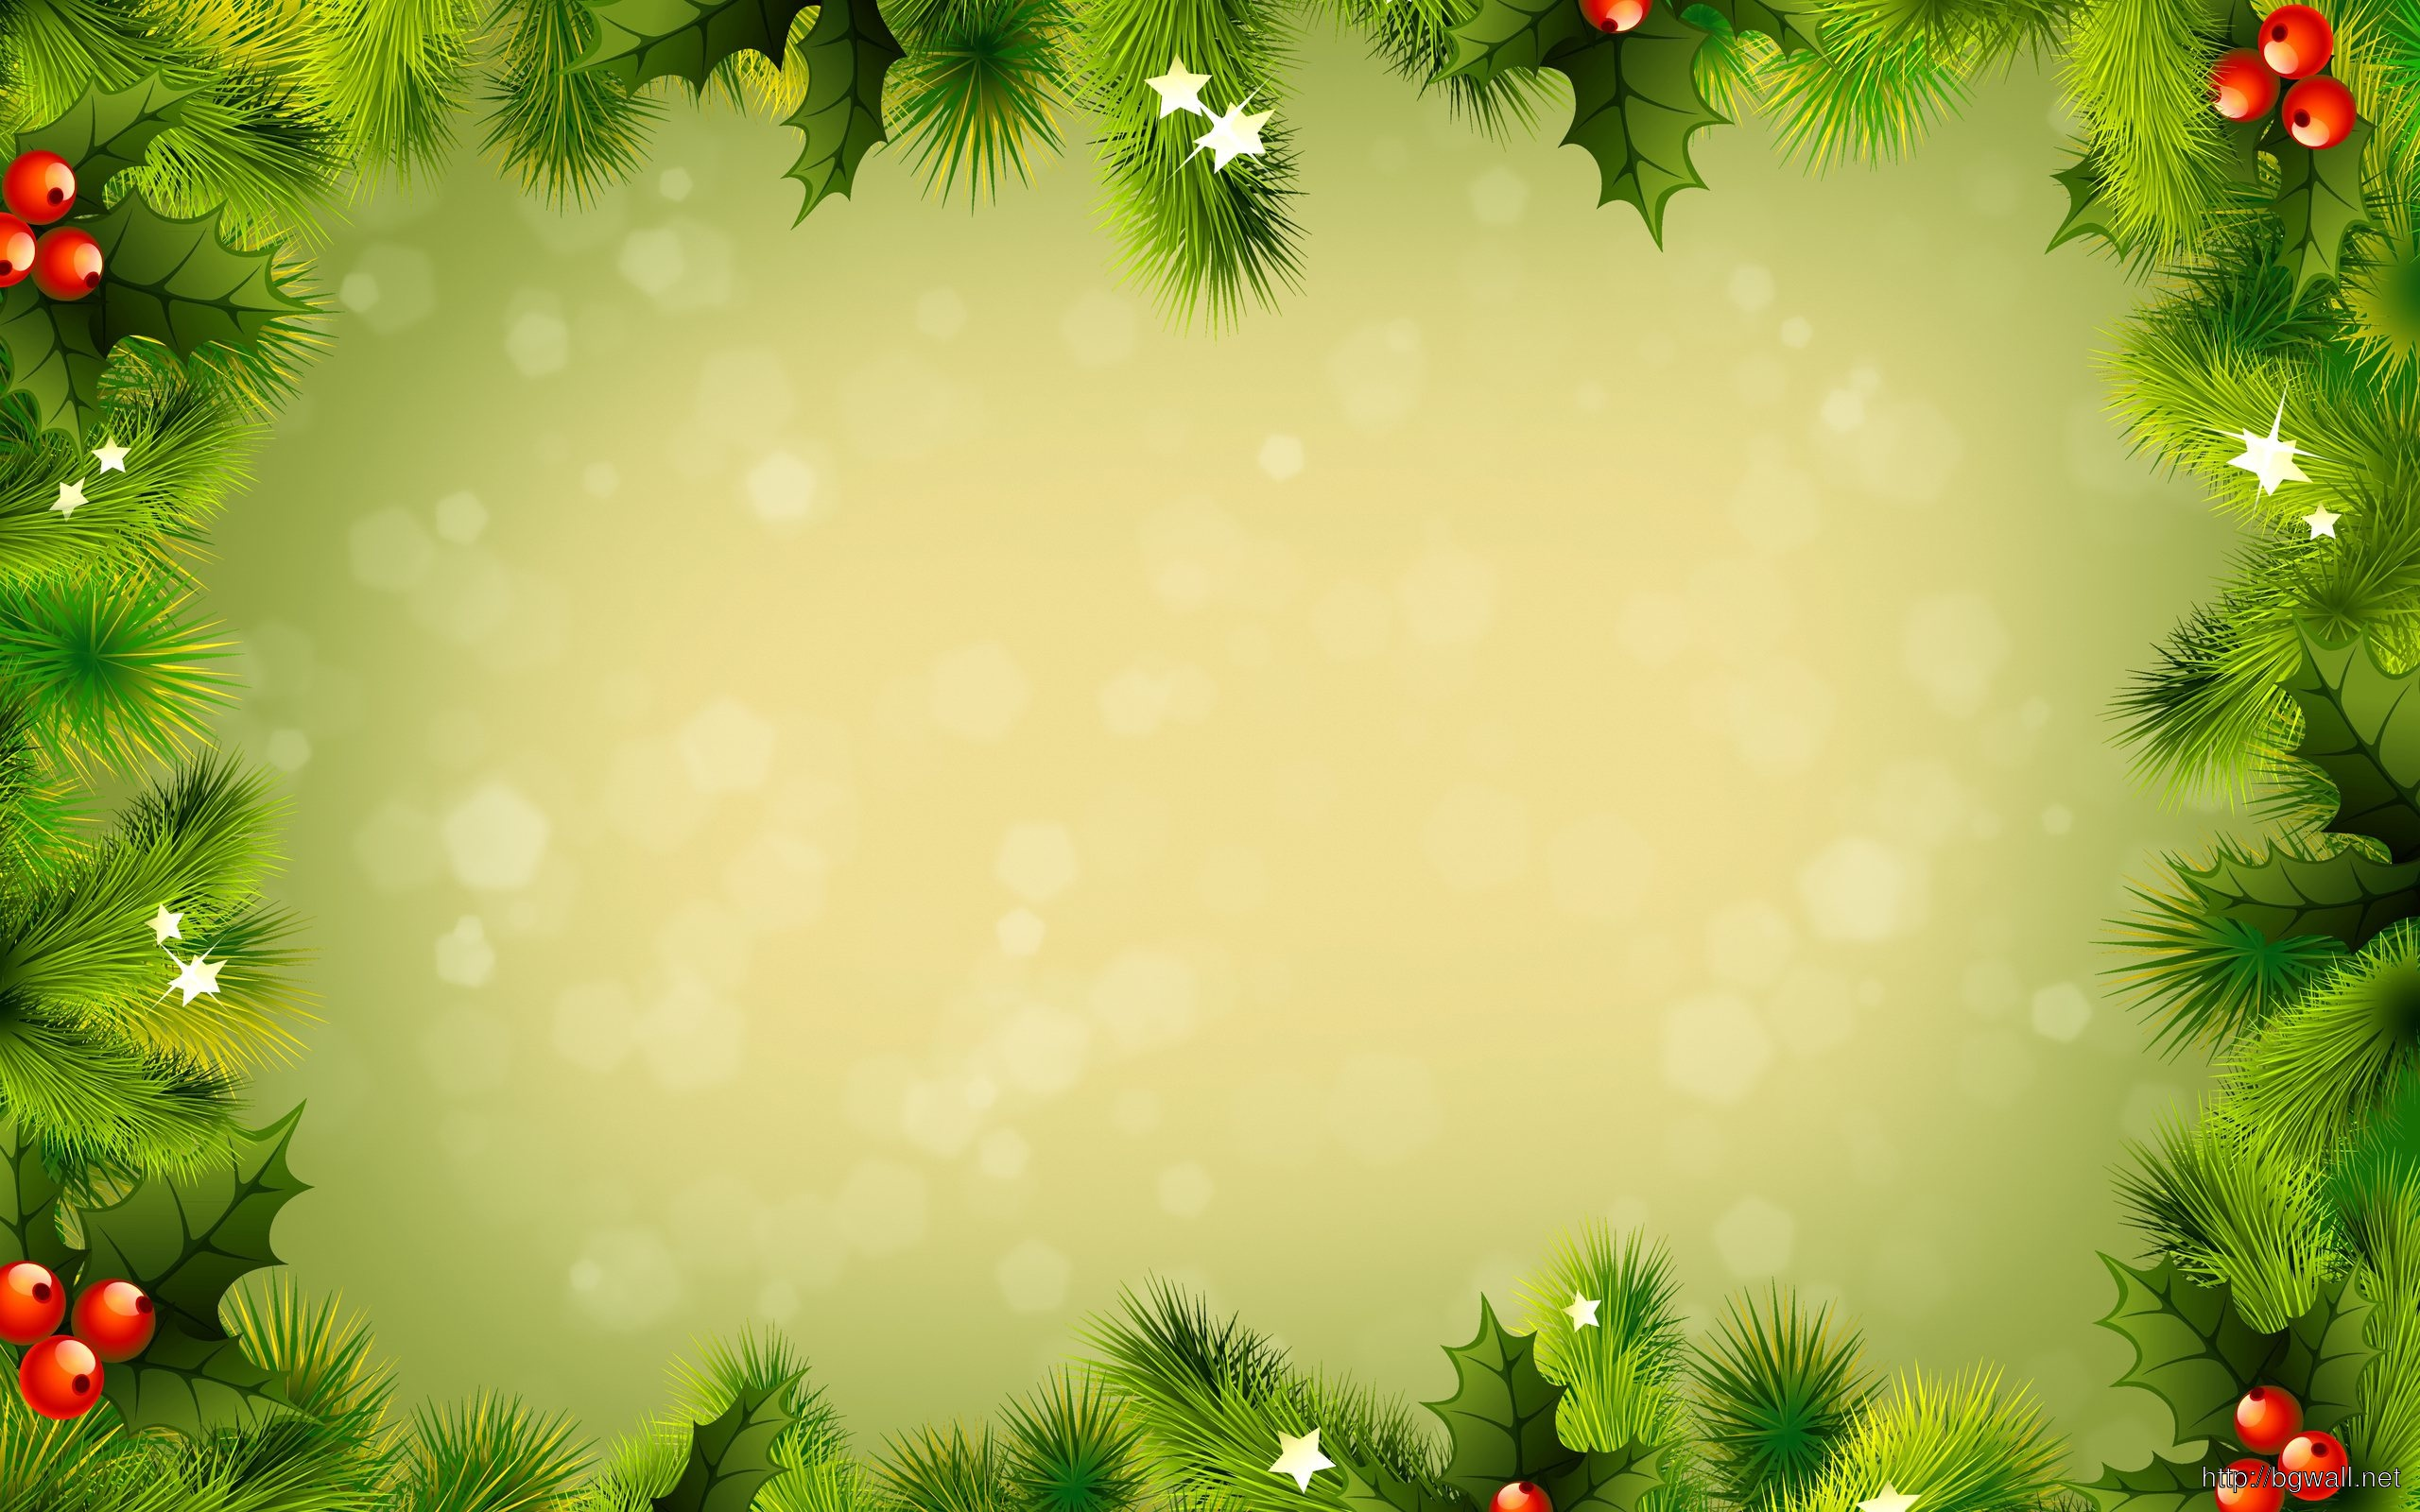 Christmas background wallpaper background wallpaper hd for Fondos de escritorio navidenos